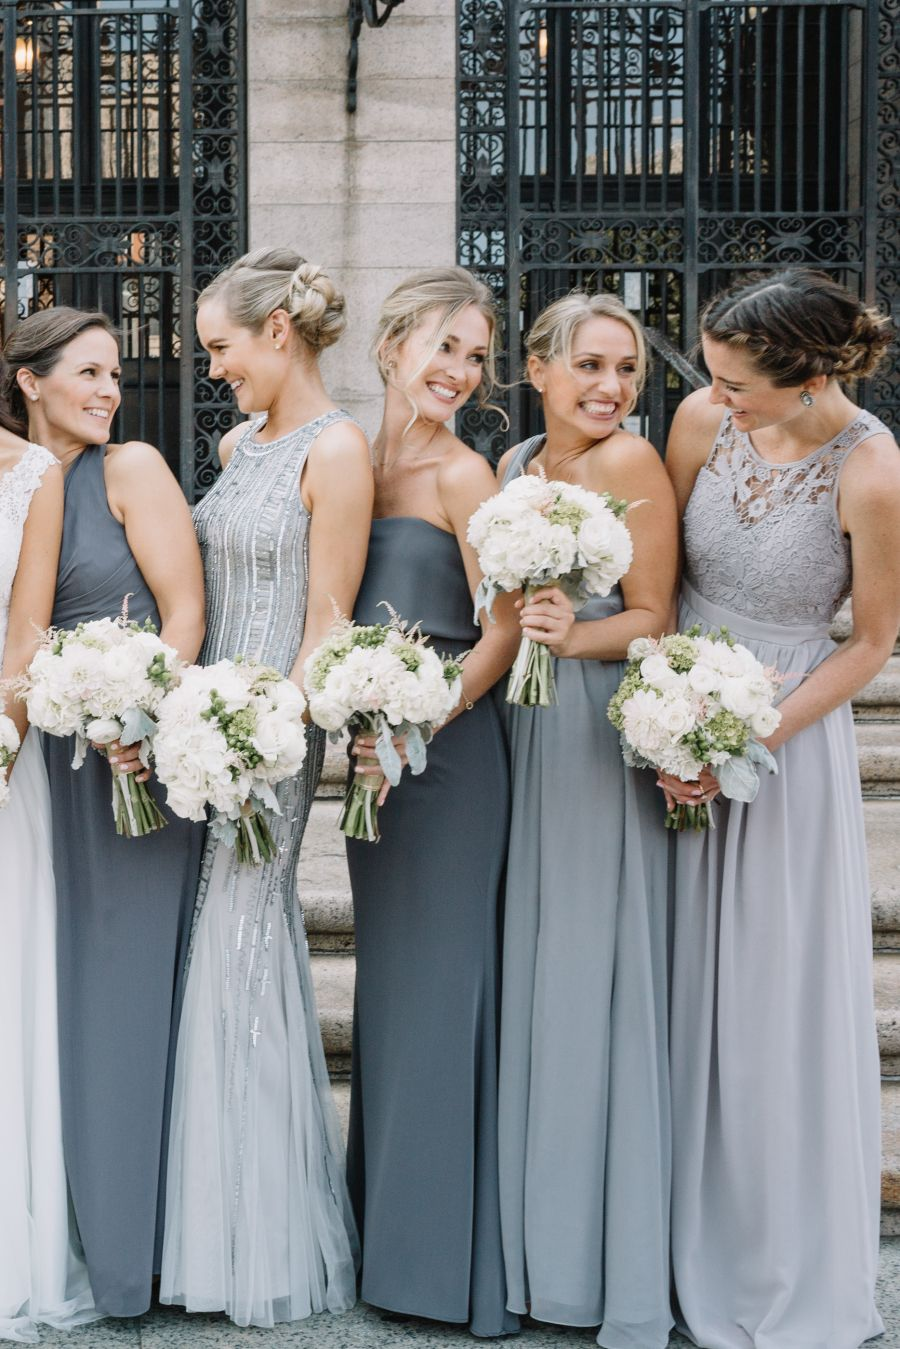 I.pinimg.com Mismatched Bridesmaids In Grey For A City Wedding Wedding